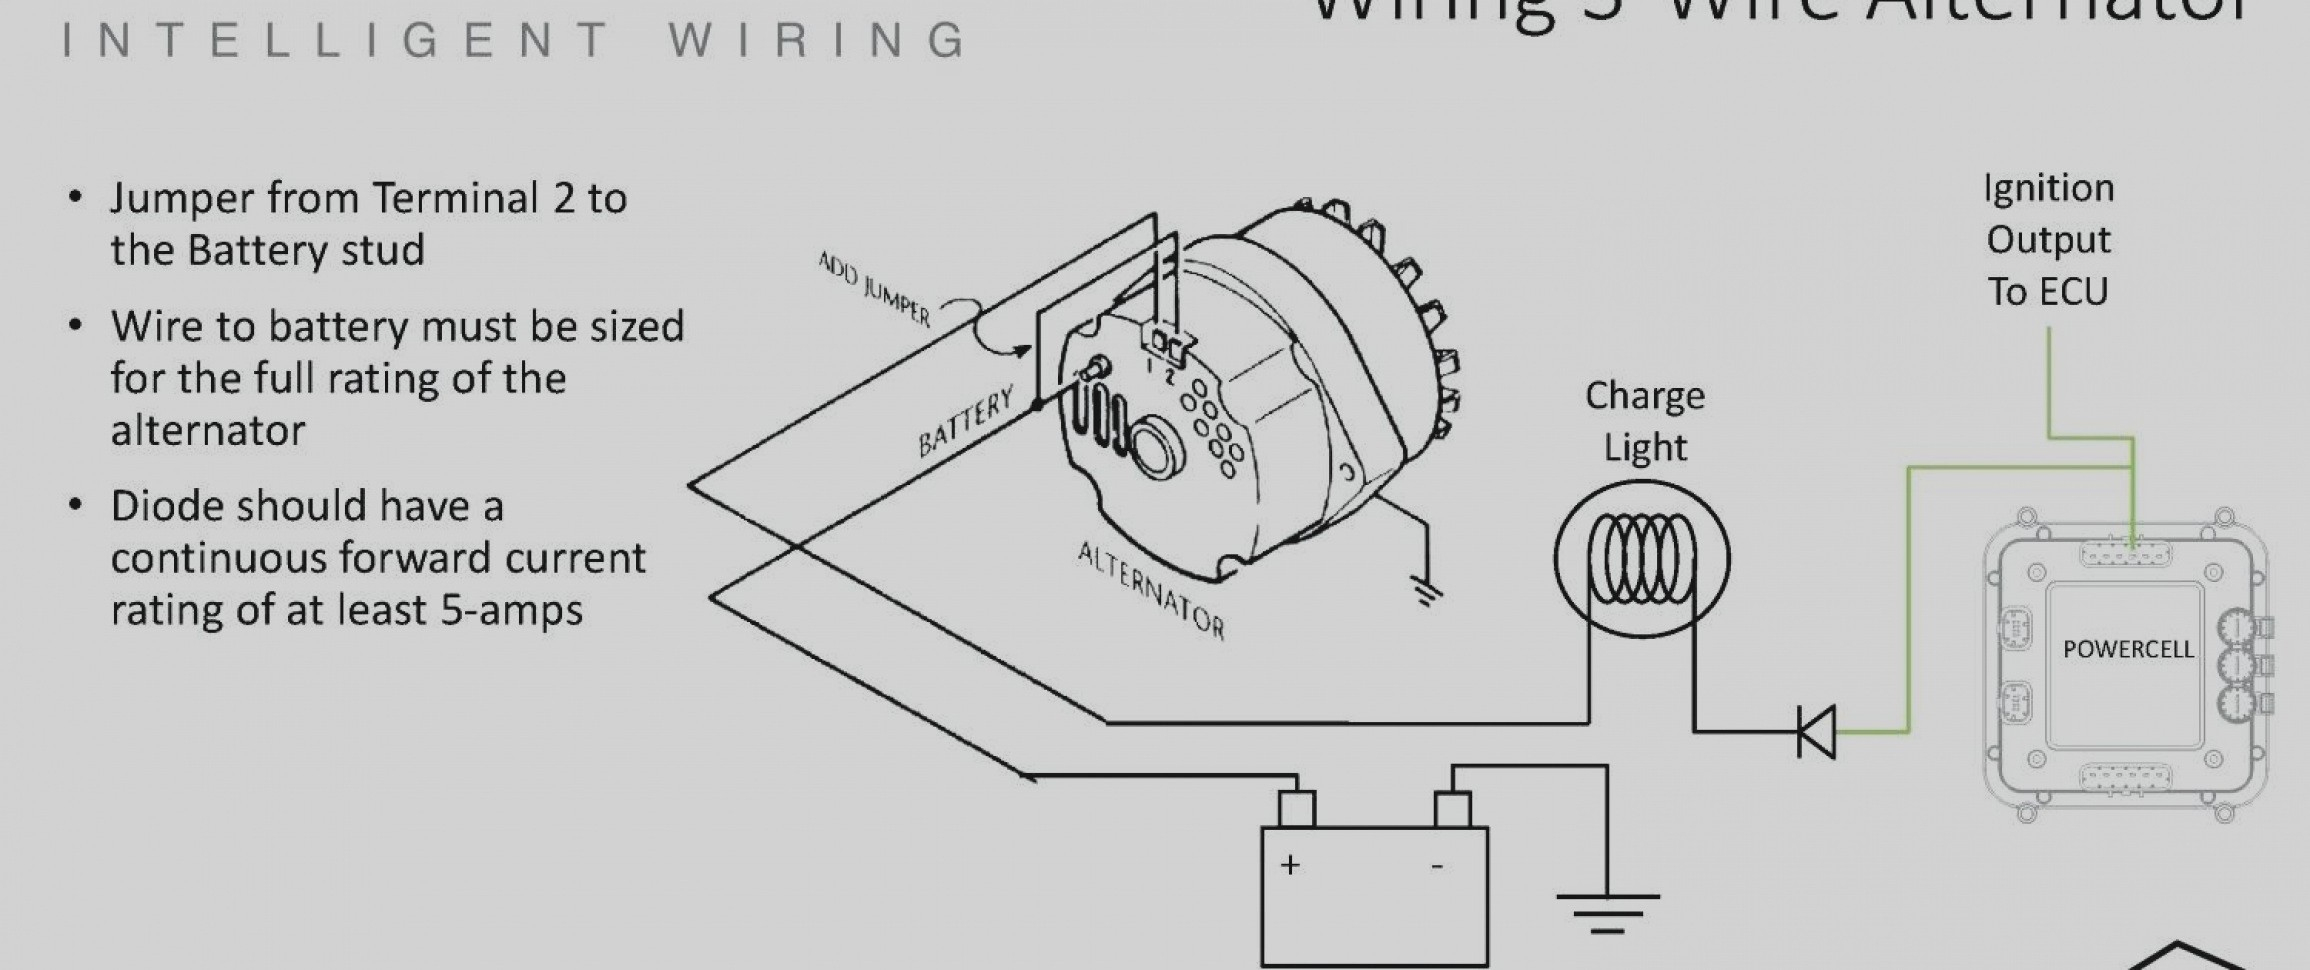 Chevy 350 Alternator Voltage Regulator Wiring Diagram - Wiring Diagrams - Chevy 350 Alternator Wiring Diagram